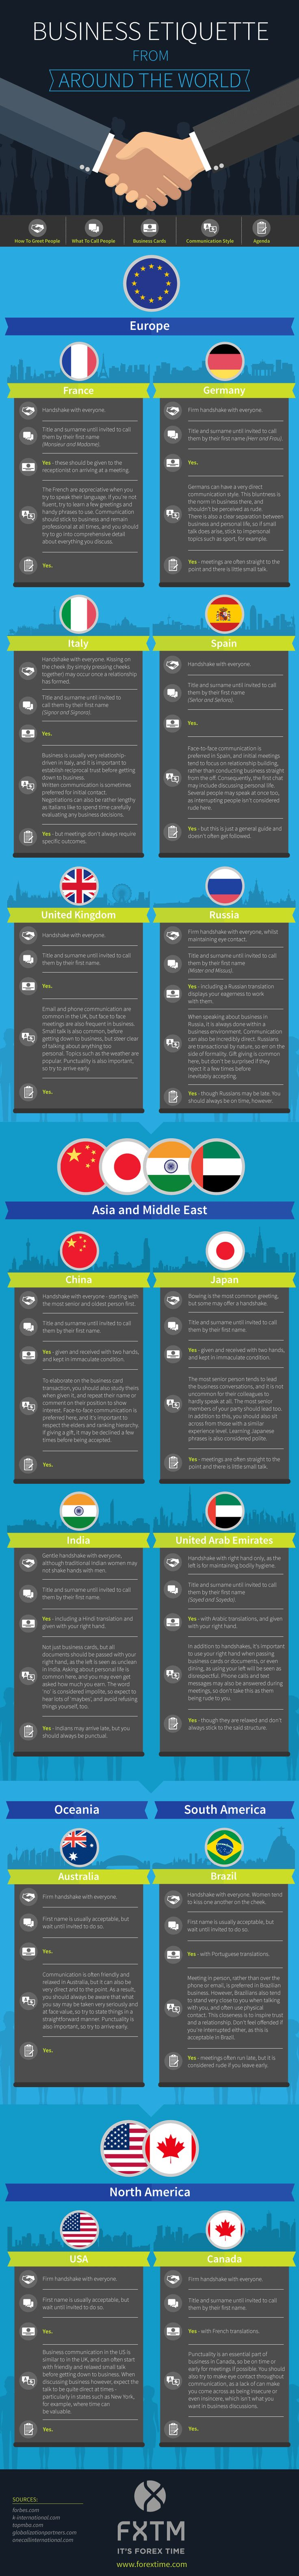 Business Etiquette from Around the World #Infographic #Business #Travel